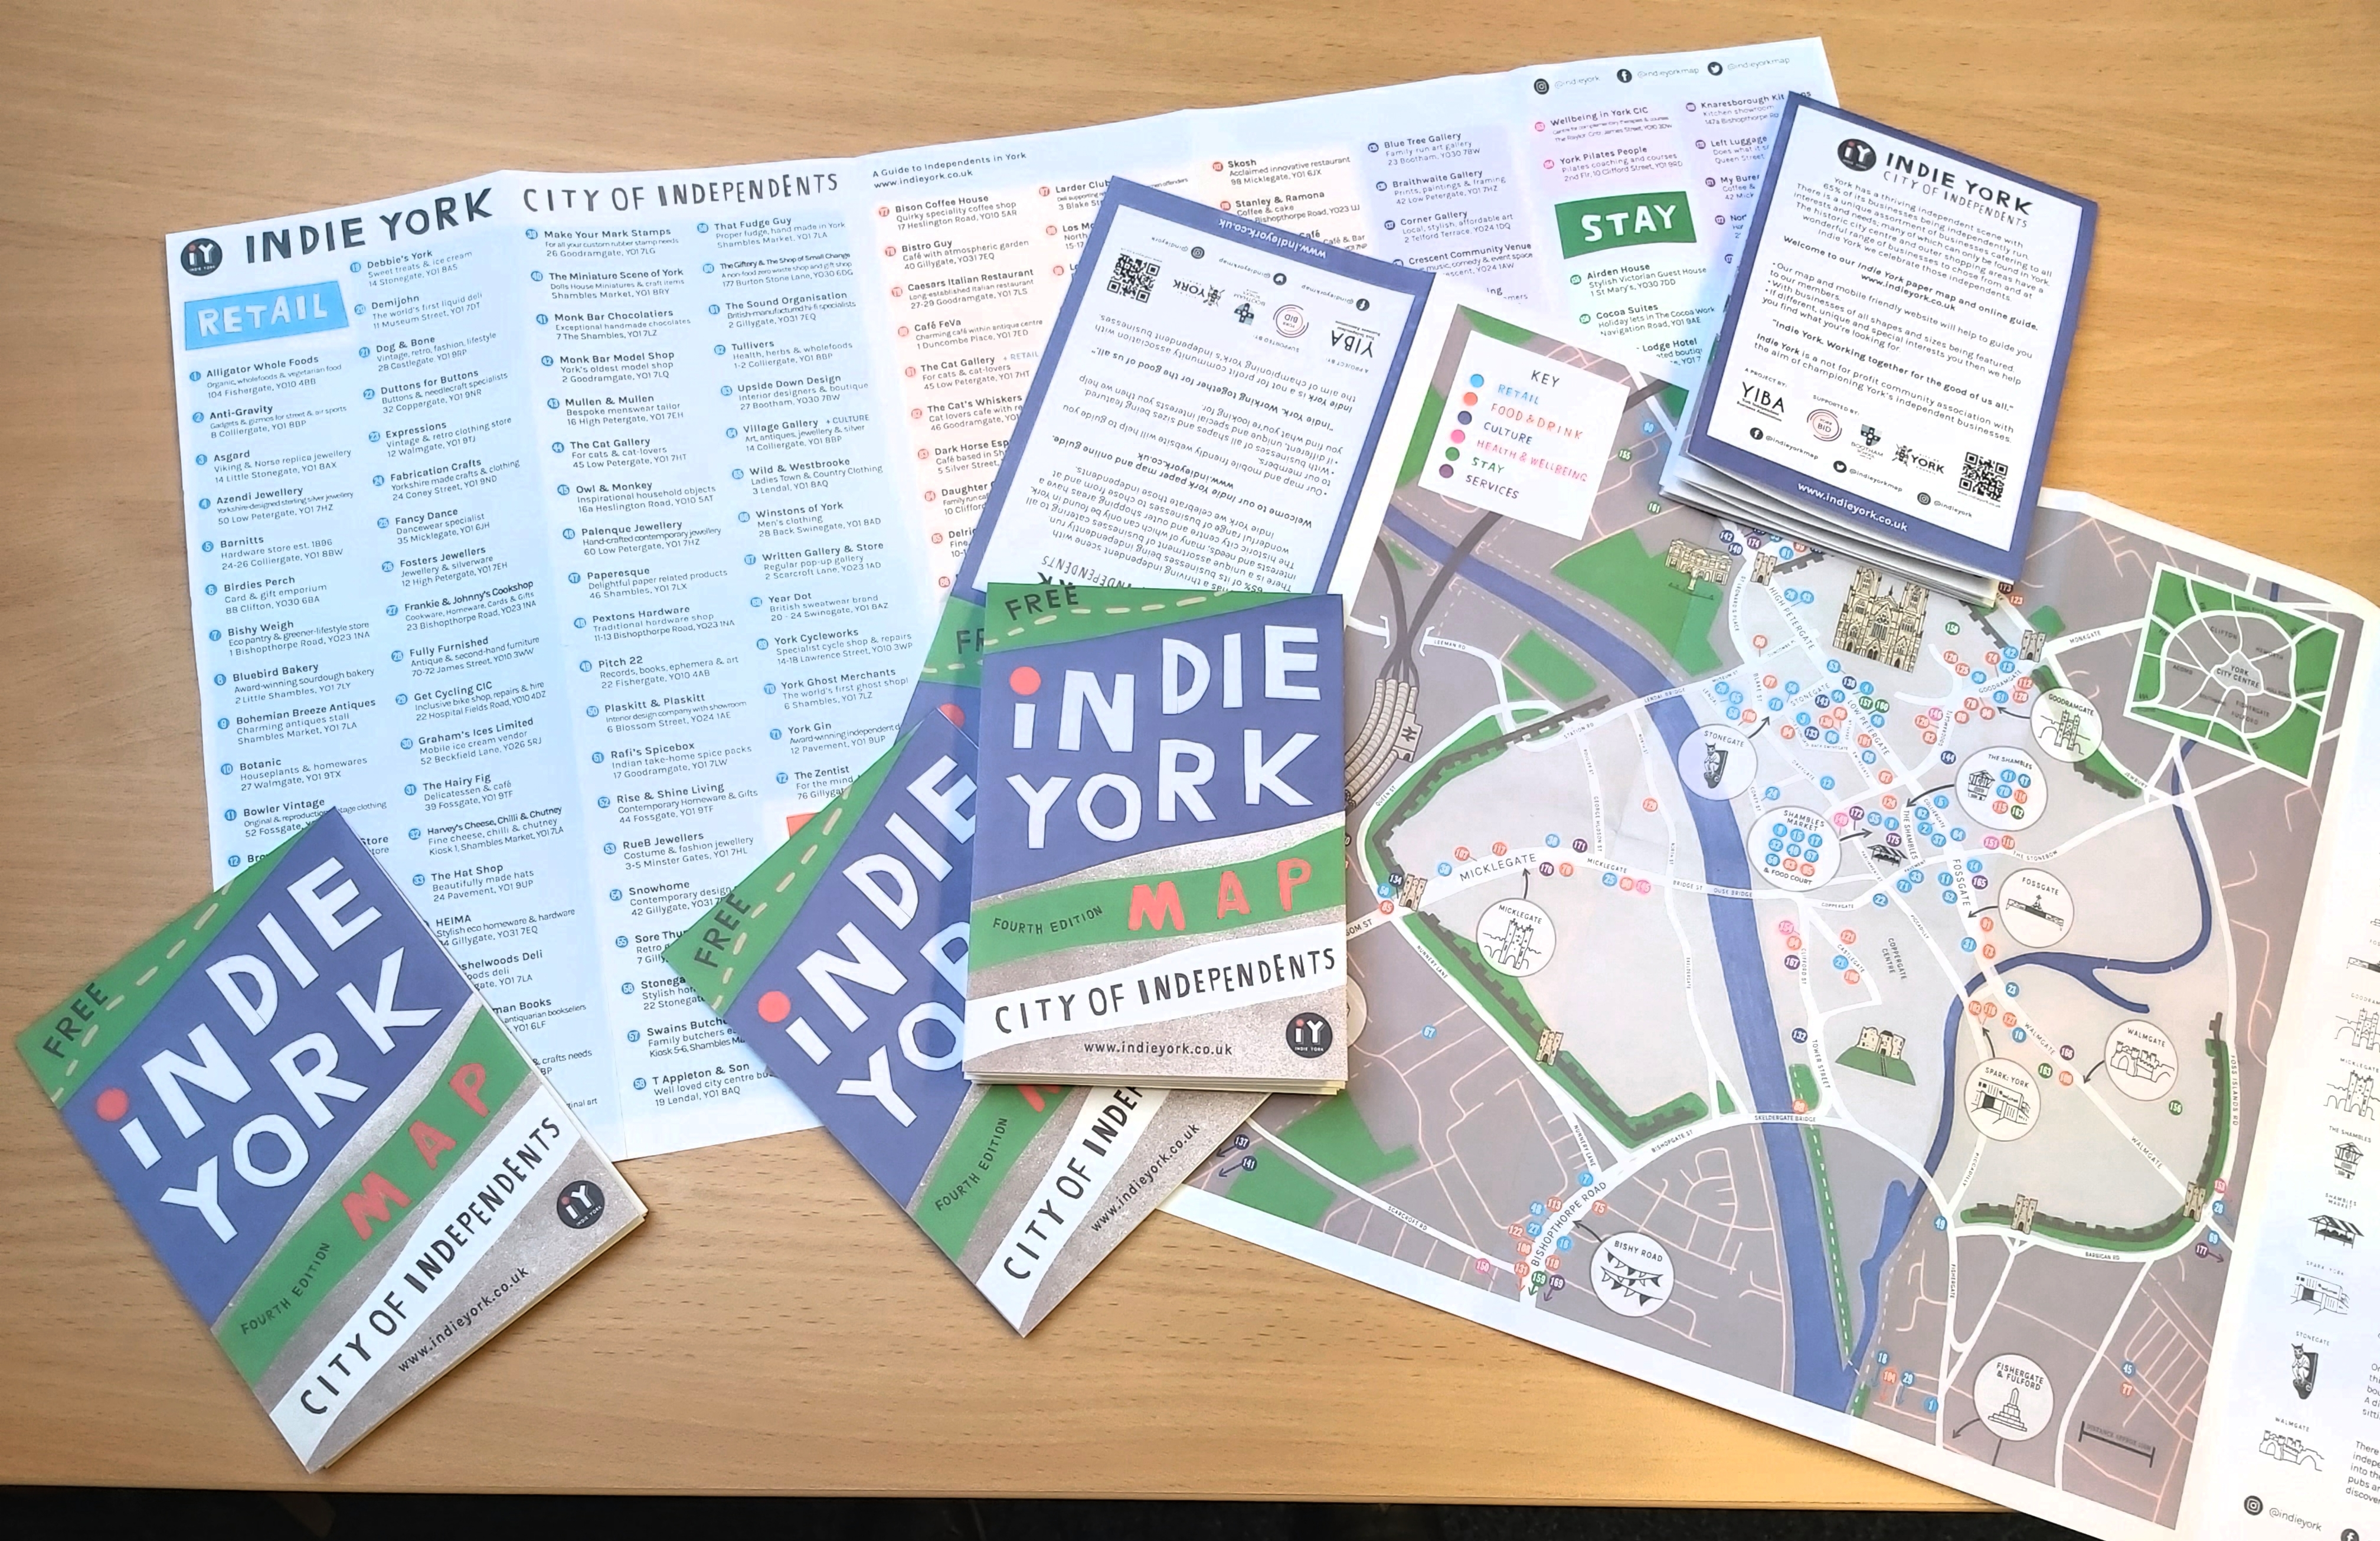 New fourth edition of the Indie York map is out!